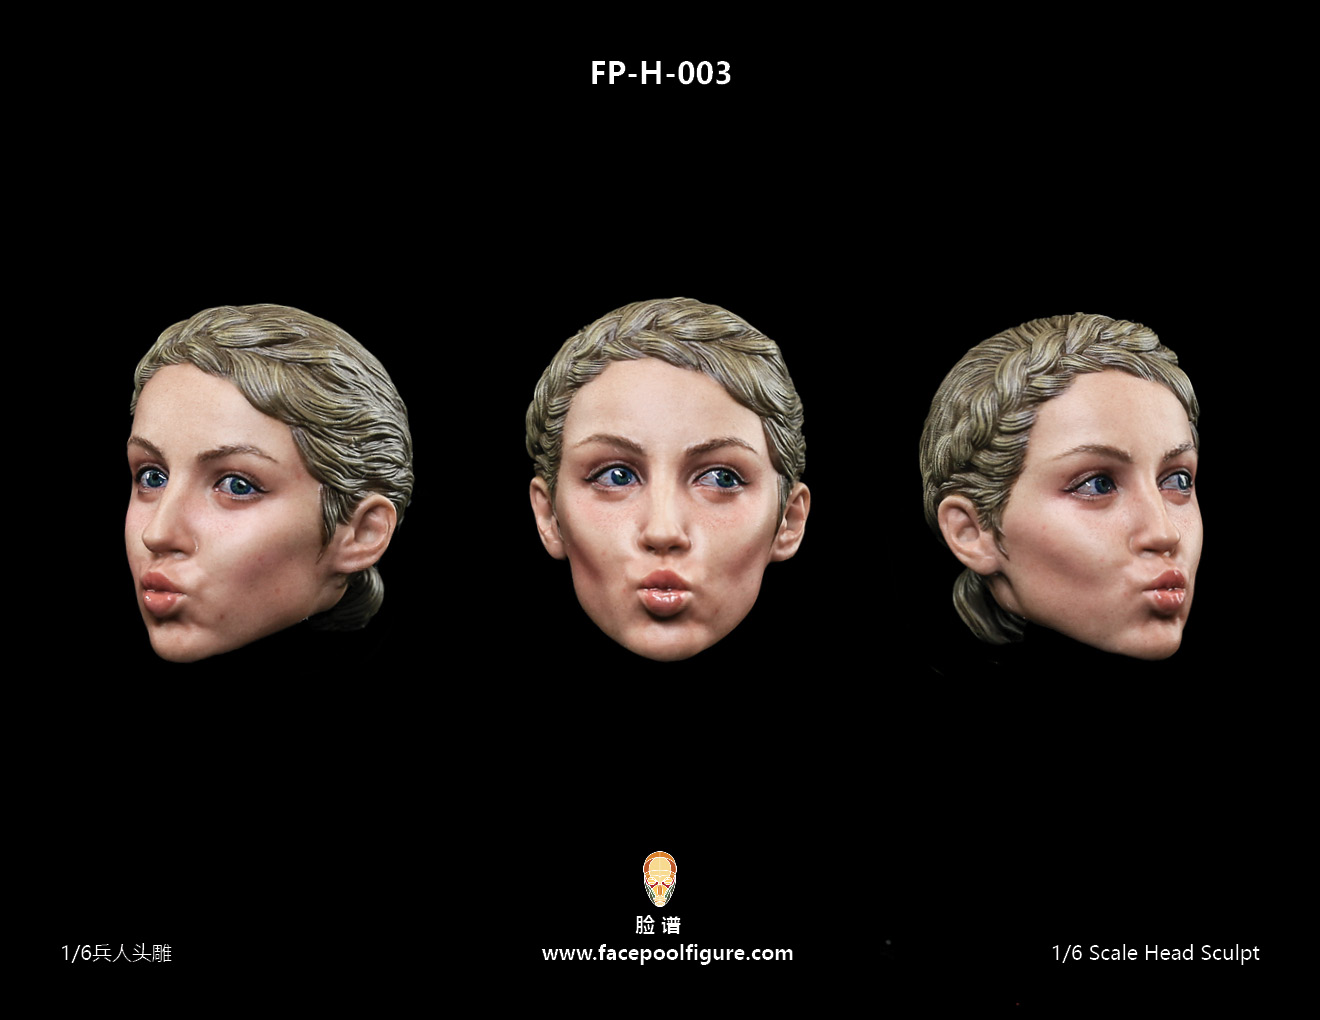 FacepoolFigure 1/6 Female Head Sculpt With Expression FP-H-003